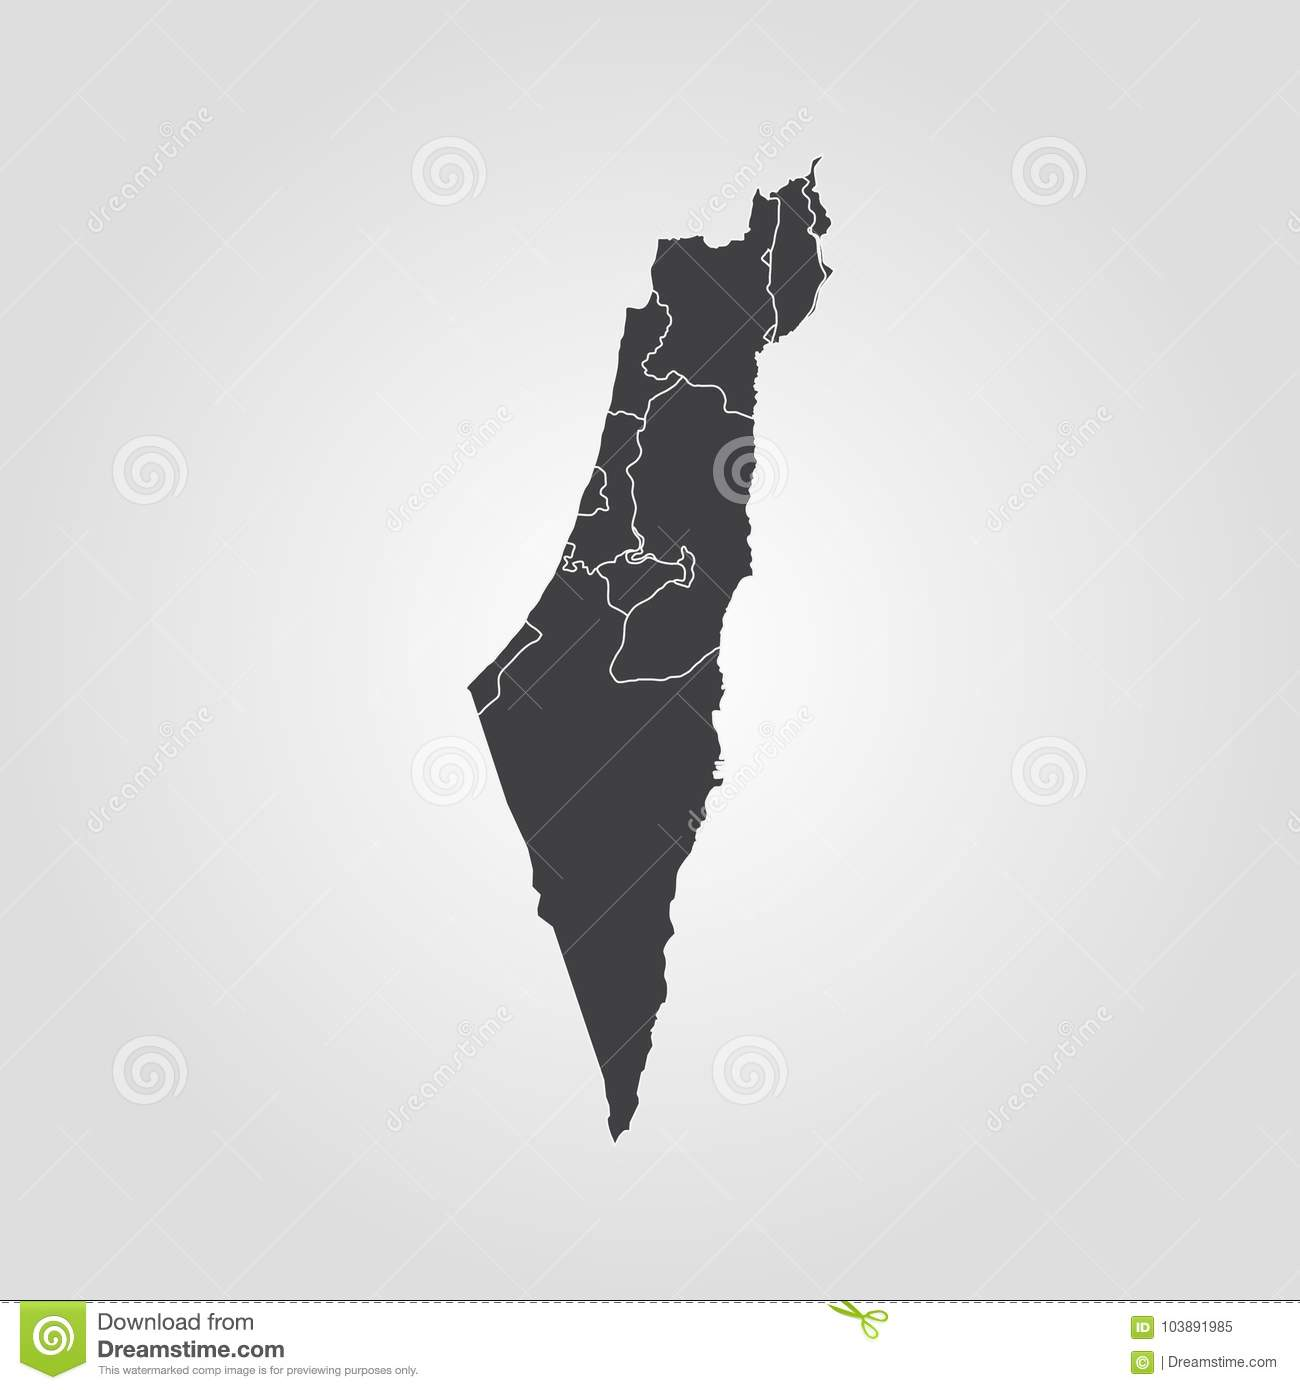 Map of israel stock illustration illustration of empty 103891985 download comp gumiabroncs Gallery